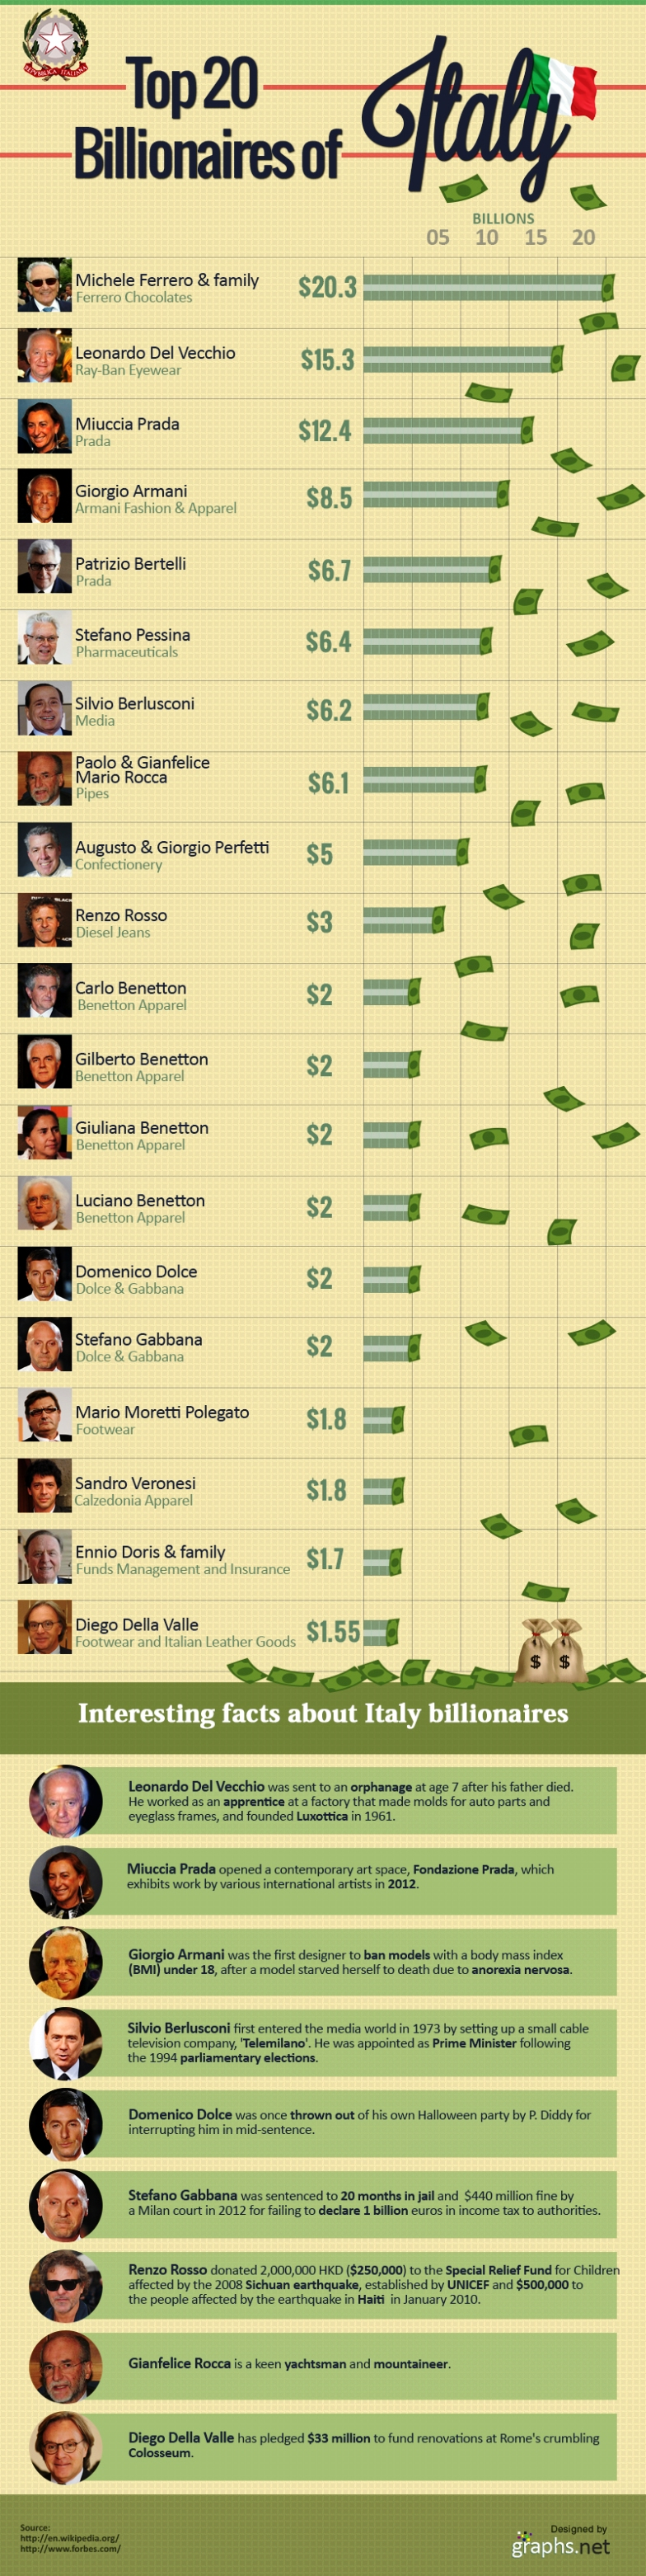 Top 20 Billionaire of Italy